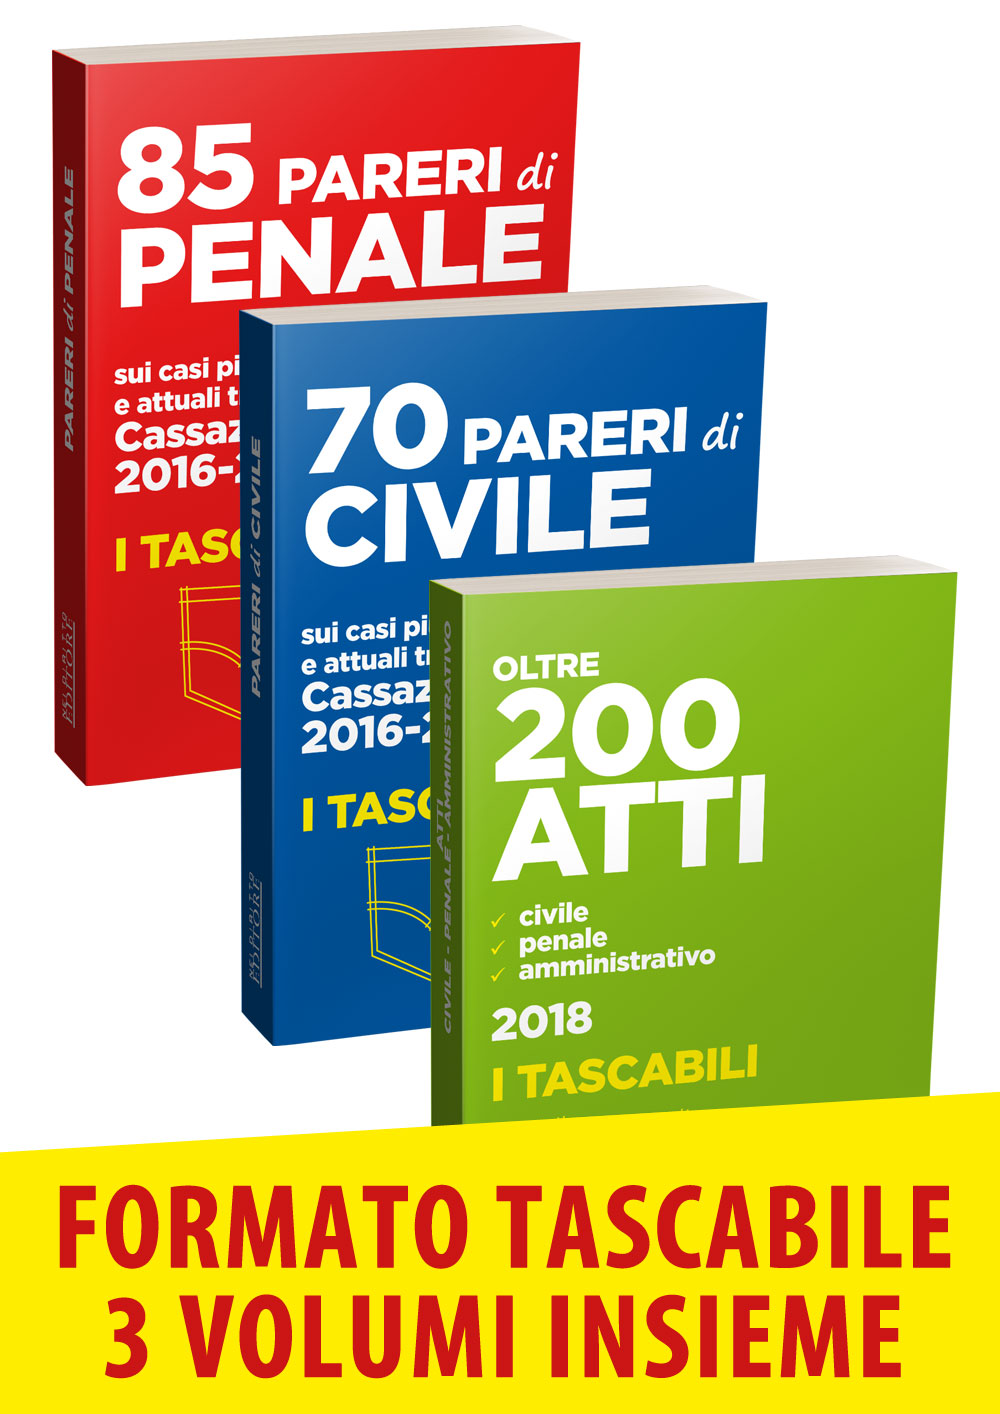 PARERI DI CIVILE, PENALE E ATTI POCKET 2018